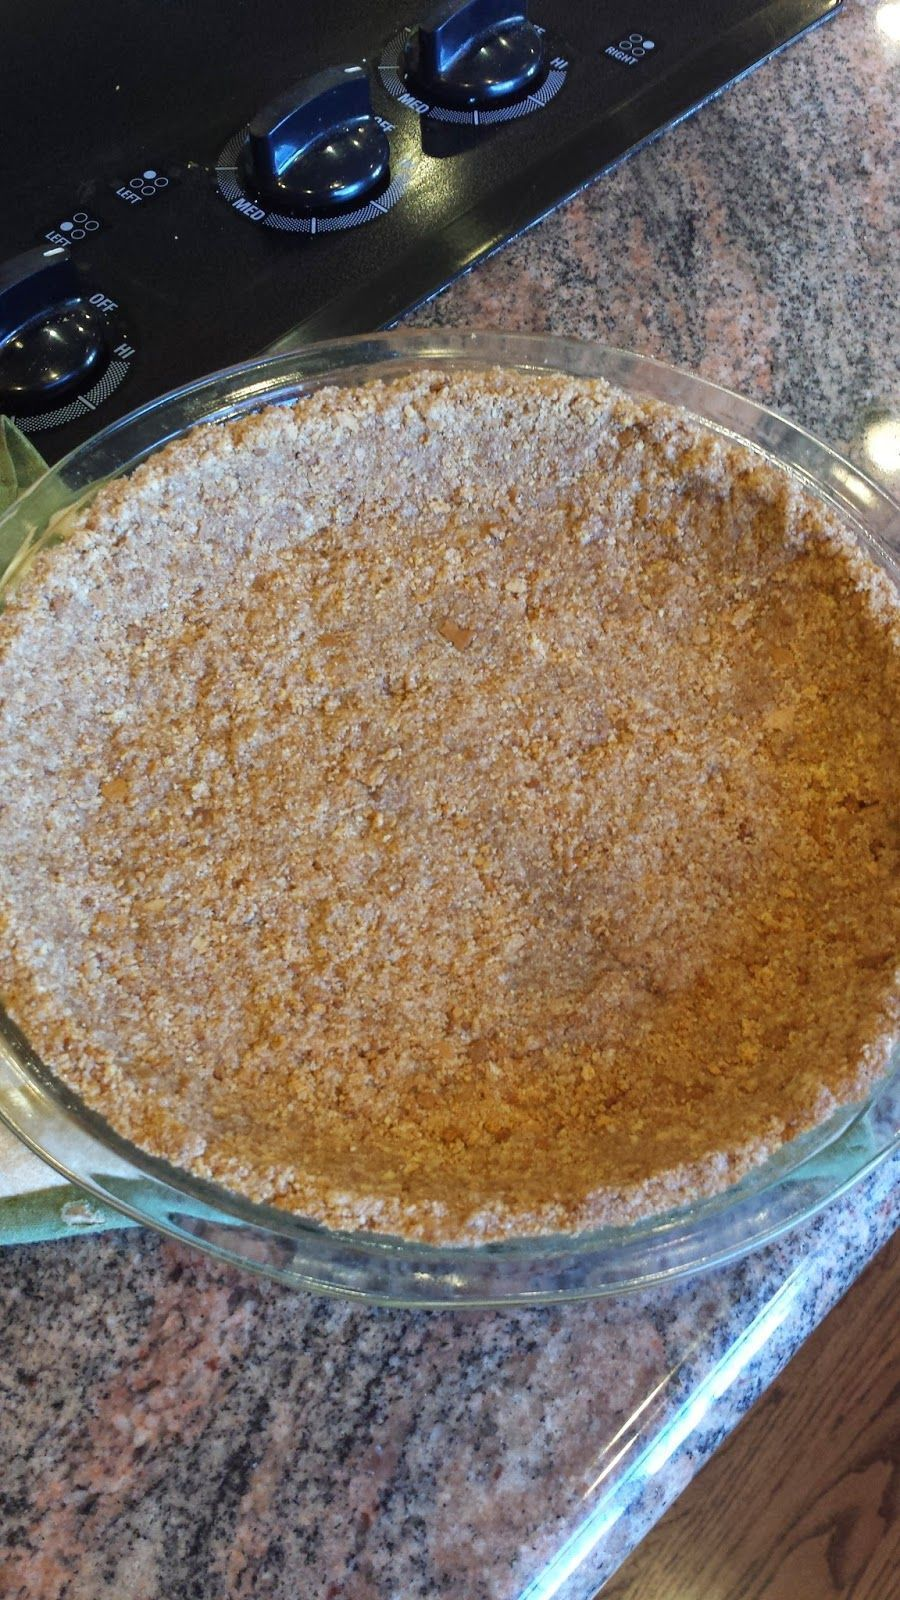 PREPARE TODAY: Prepare Today Homemade-- Graham Crackers & Graham Cracker Crust Recipes using powdered butter #homemadegrahamcrackercrust PREPARE TODAY: Prepare Today Homemade-- Graham Crackers & Graham Cracker Crust Recipes using powdered butter #homemadegrahamcrackercrust PREPARE TODAY: Prepare Today Homemade-- Graham Crackers & Graham Cracker Crust Recipes using powdered butter #homemadegrahamcrackercrust PREPARE TODAY: Prepare Today Homemade-- Graham Crackers & Graham Cracker Crust Recipes us #homemadegrahamcrackercrust